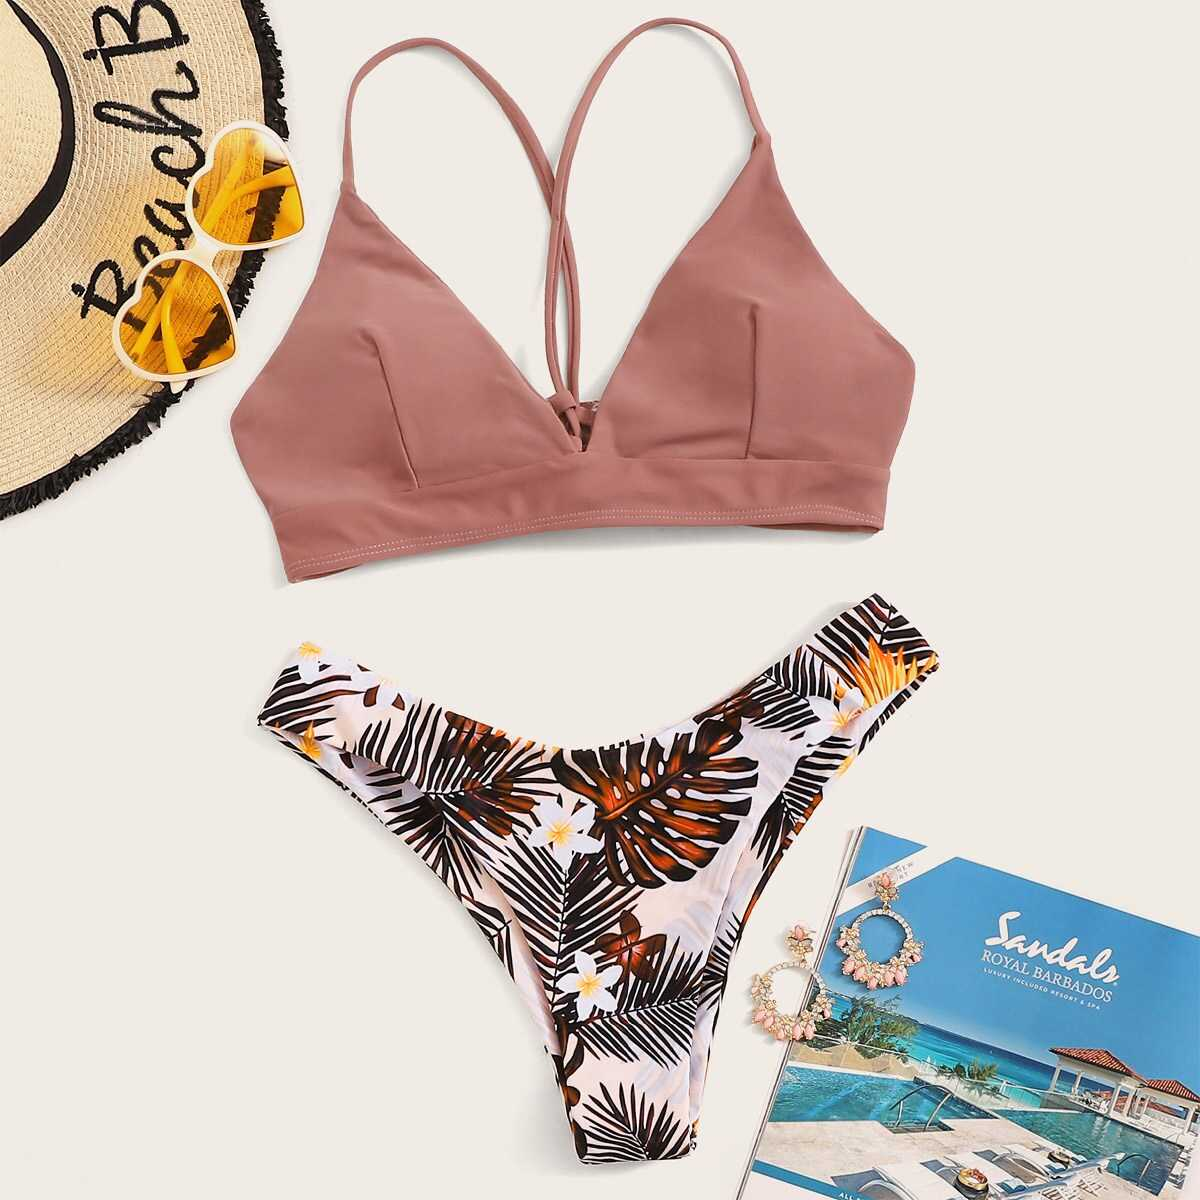 Lace-up Triangle Top With Tropical Bikini Set in Multicolor by ROMWE on GOOFASH